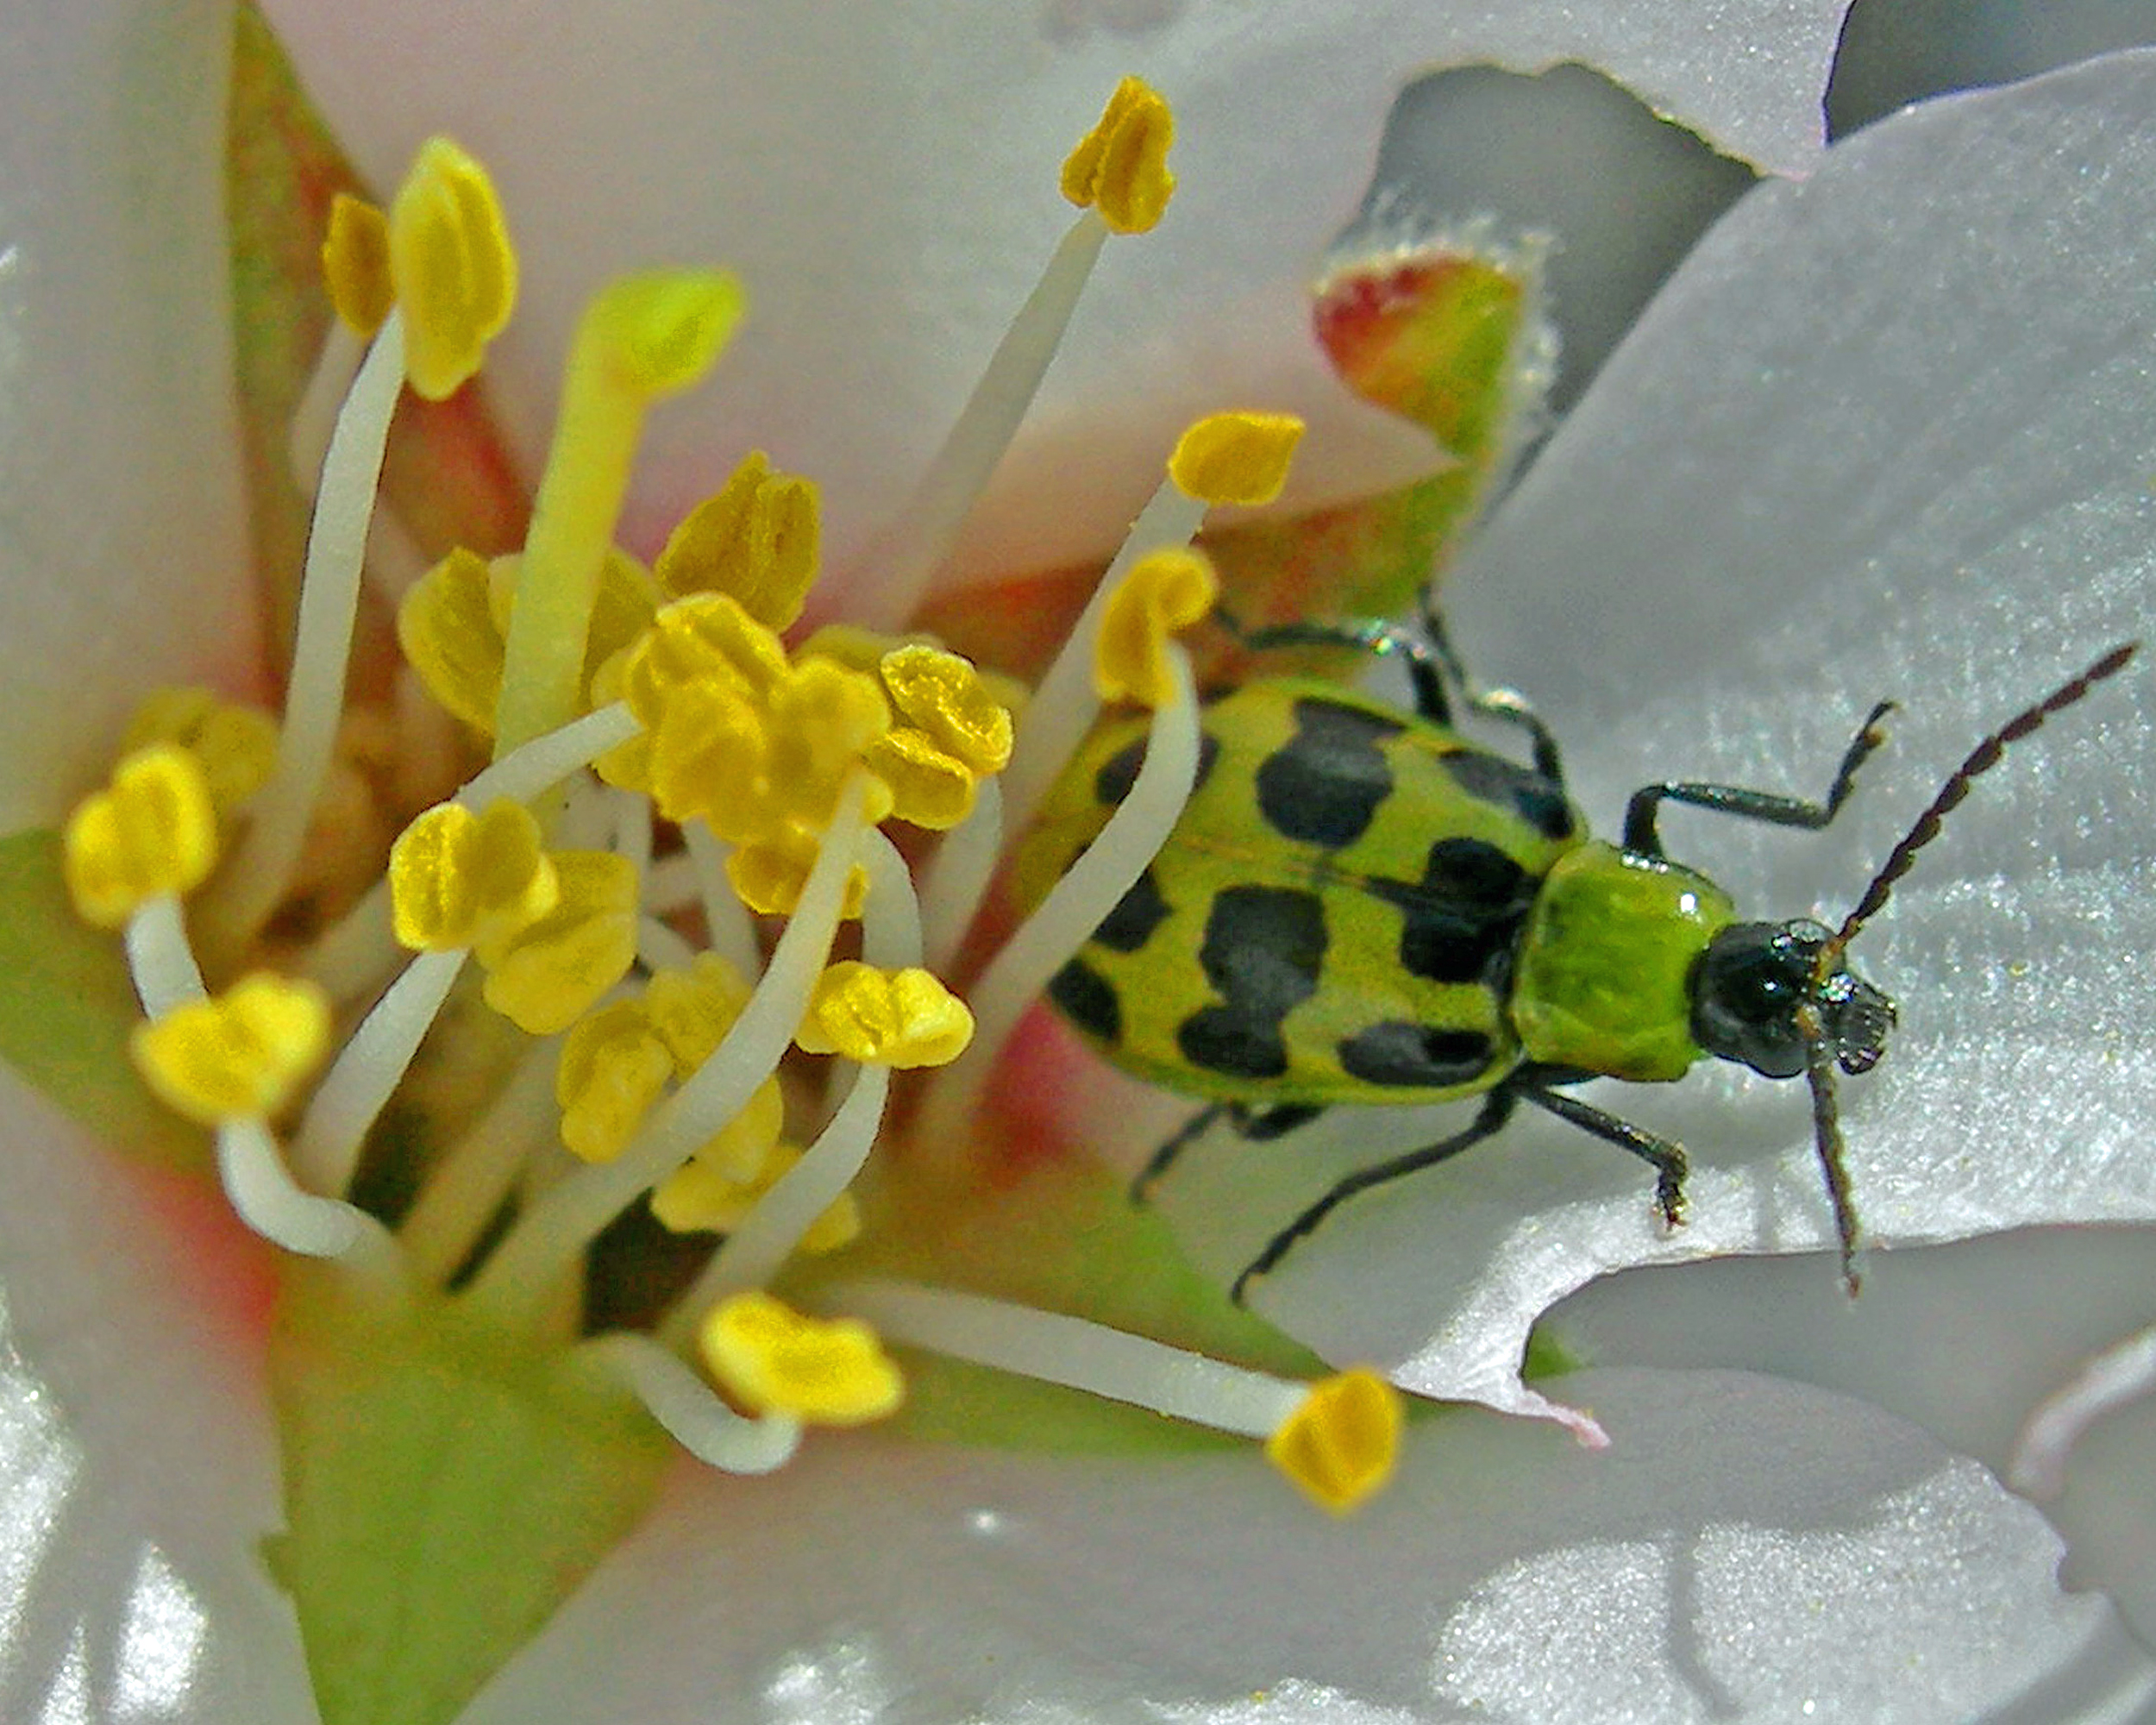 pest on a flower